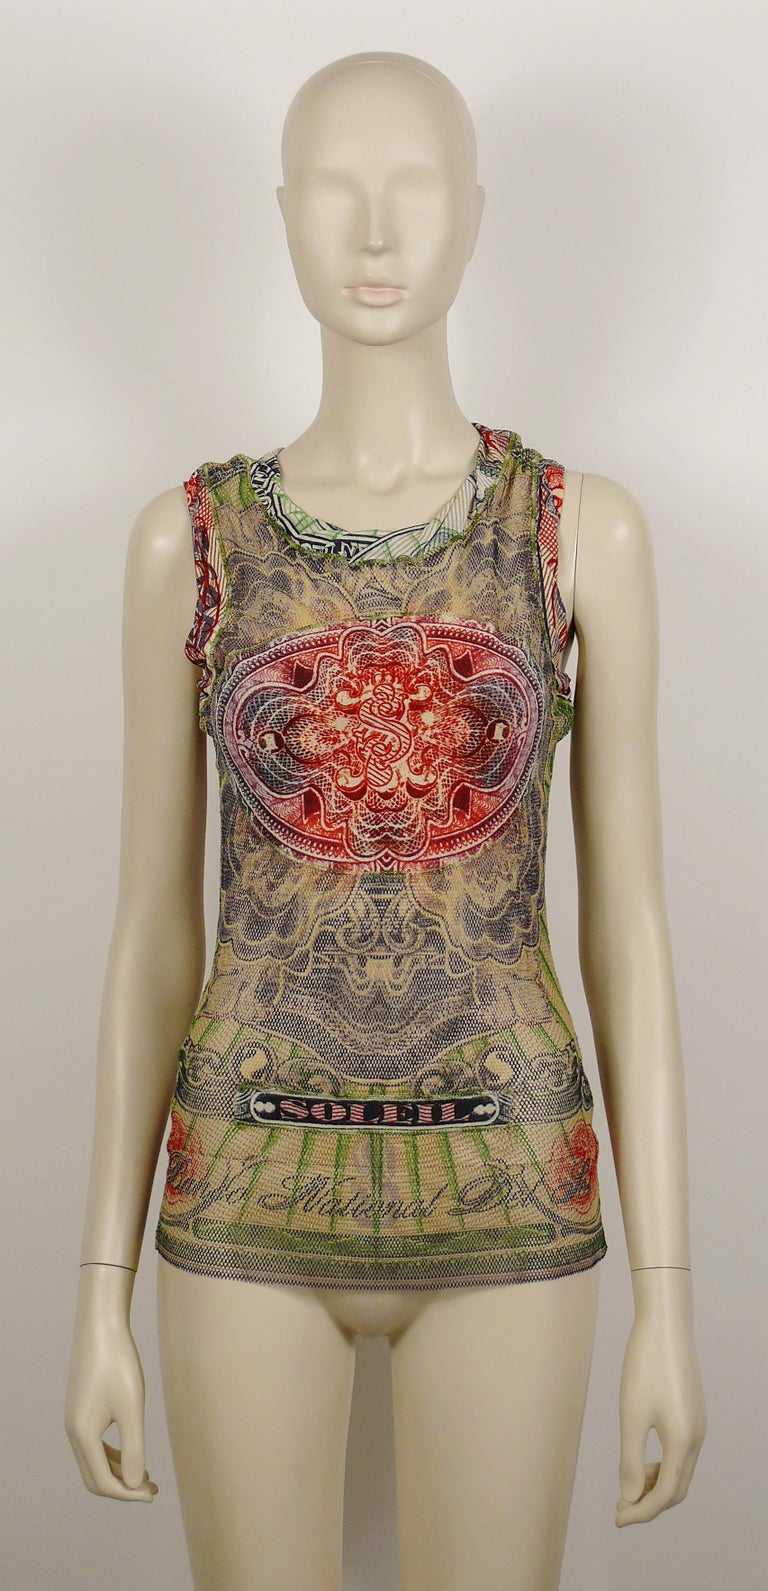 Jean Paul Gaultier Vintage Banknote Print Sheer Fishnet Tank Top Size S In Excellent Condition For Sale In Nice, FR